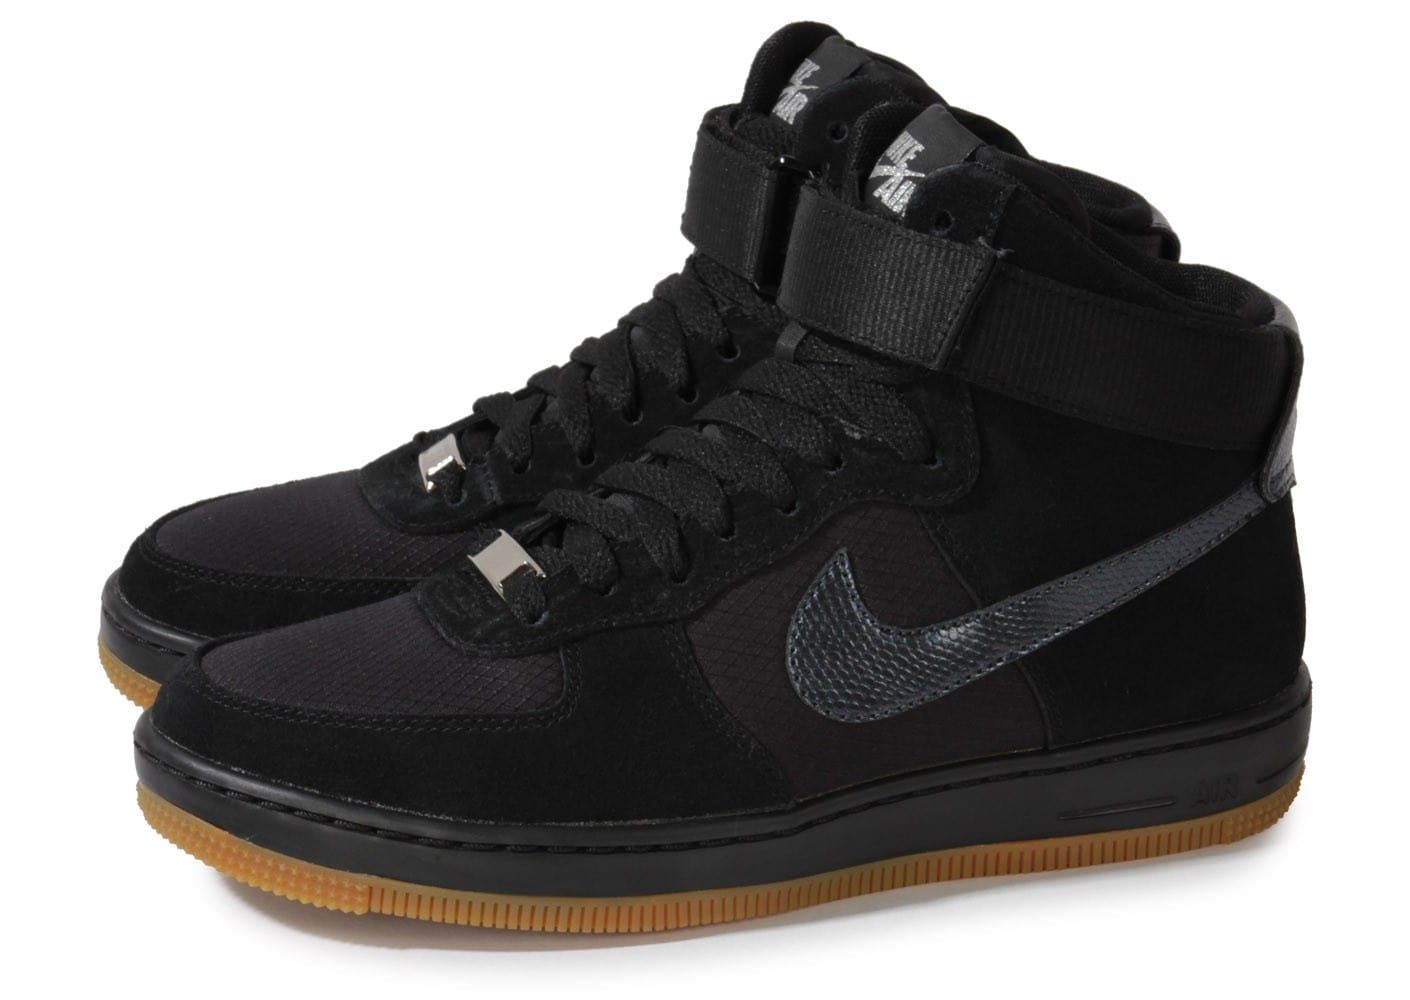 nike air force 1 ultra force mid noir gum chaussures. Black Bedroom Furniture Sets. Home Design Ideas